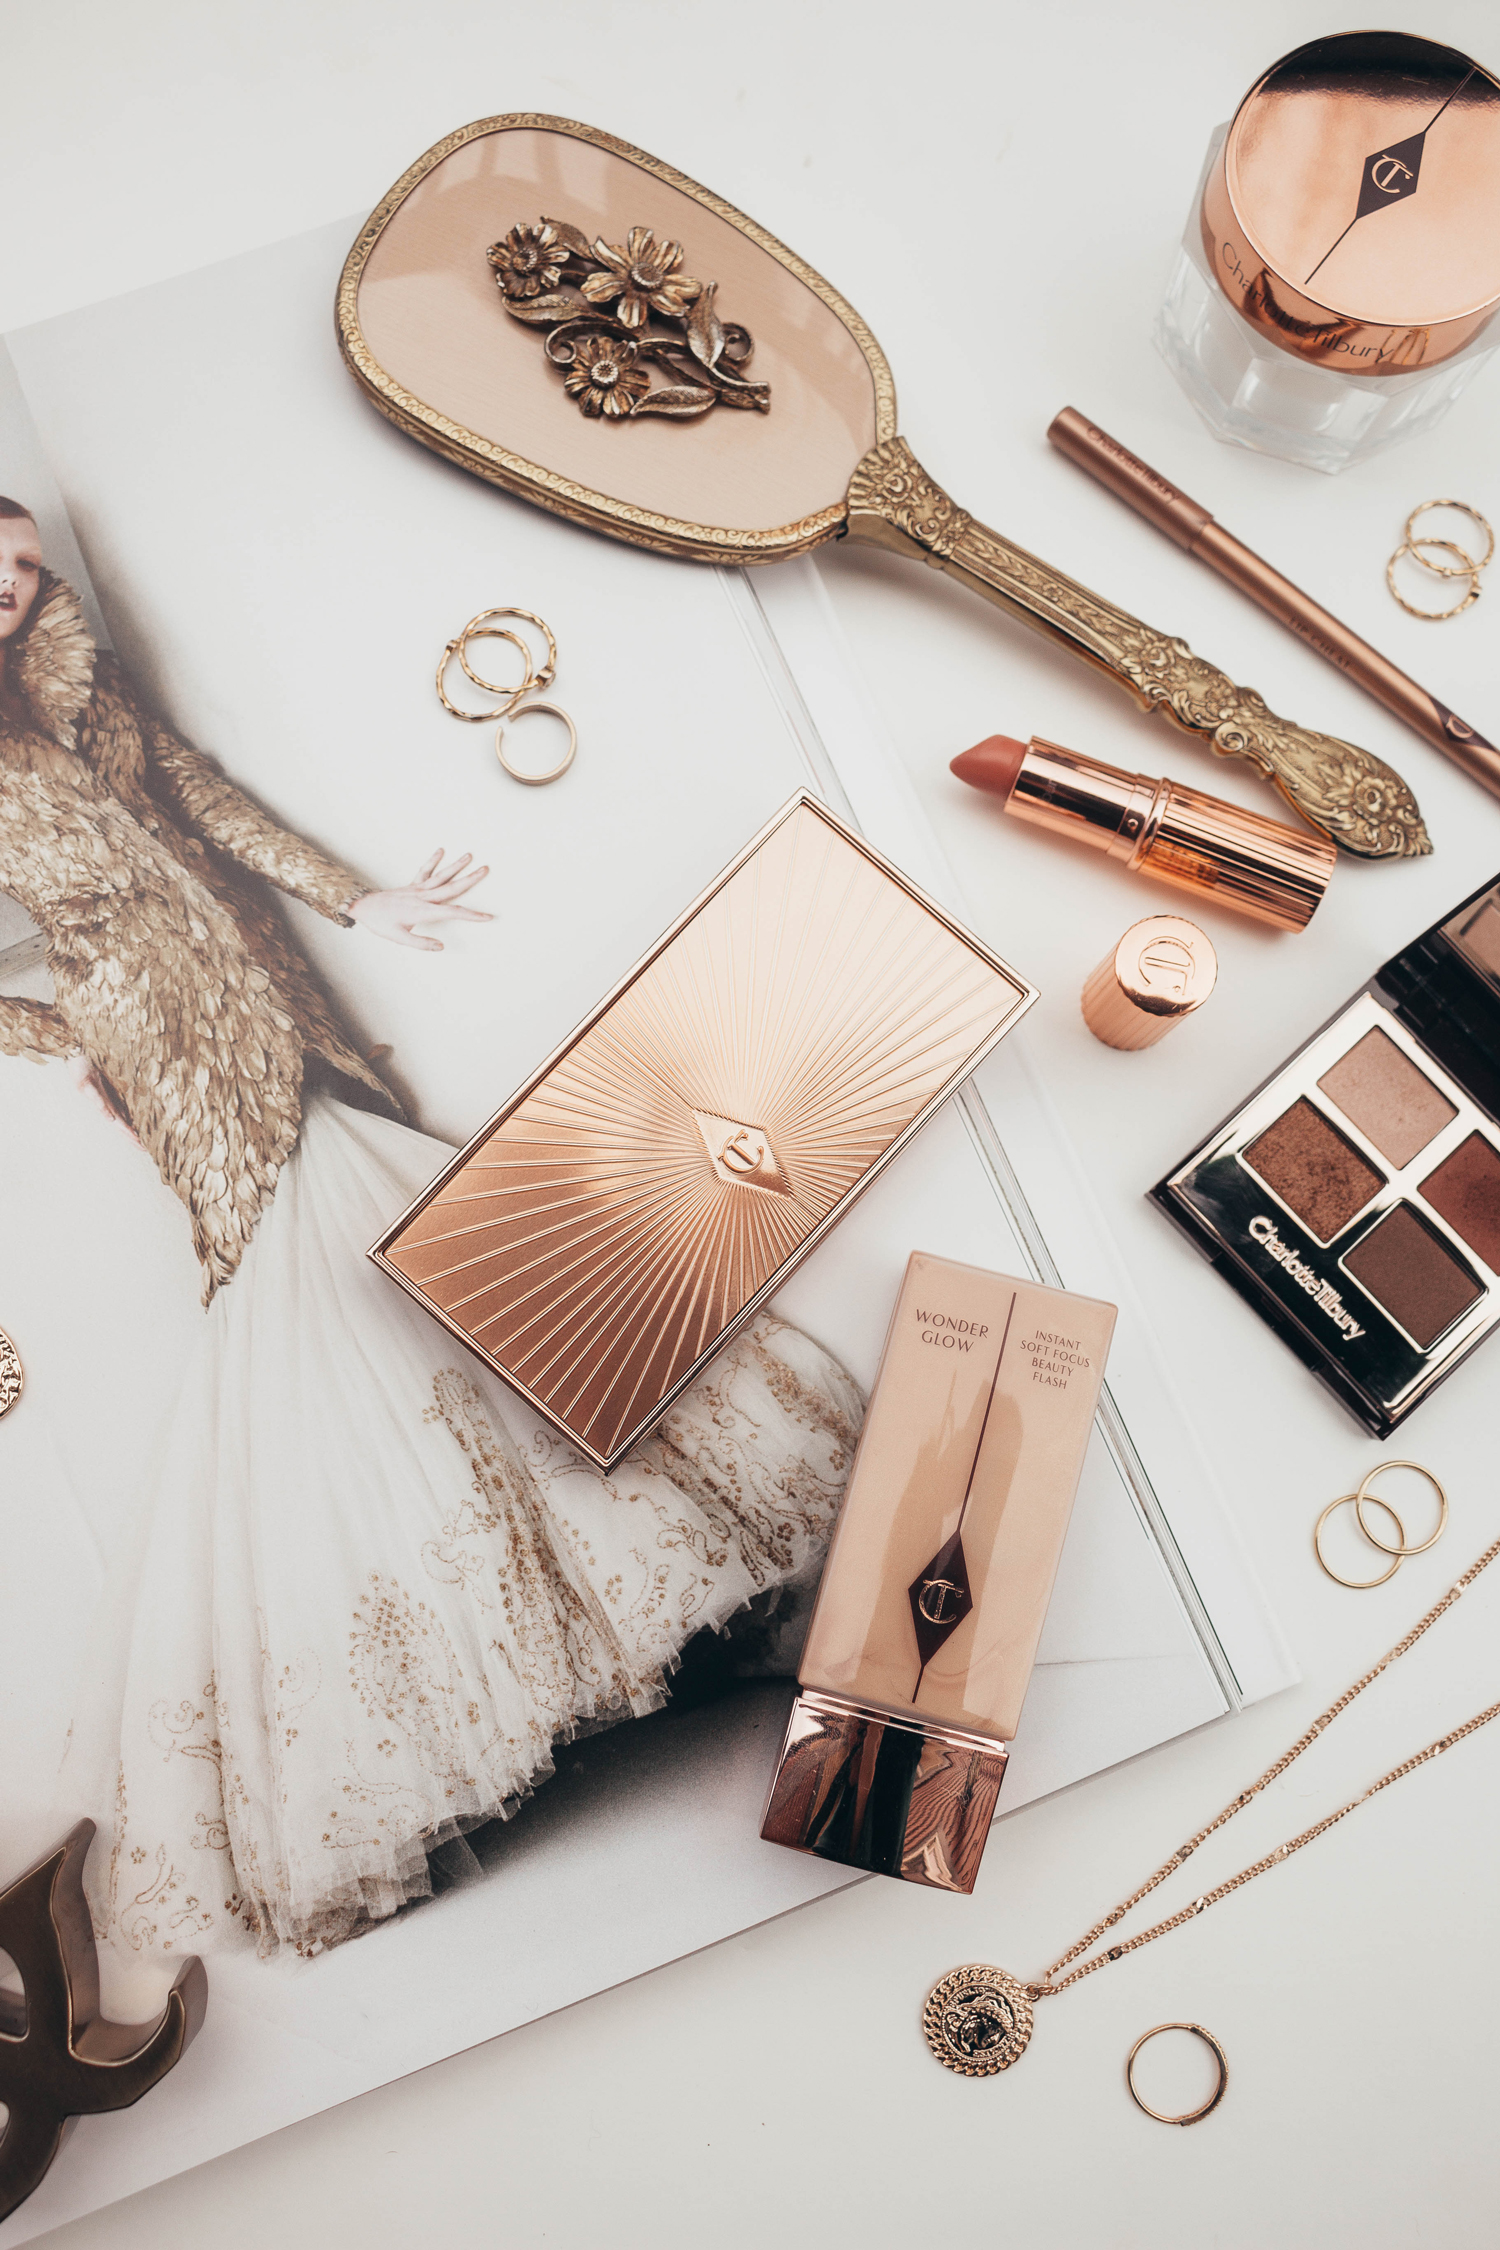 Charlotte Tilbury Cosmetics Makeup Gold Hollywood Glamour